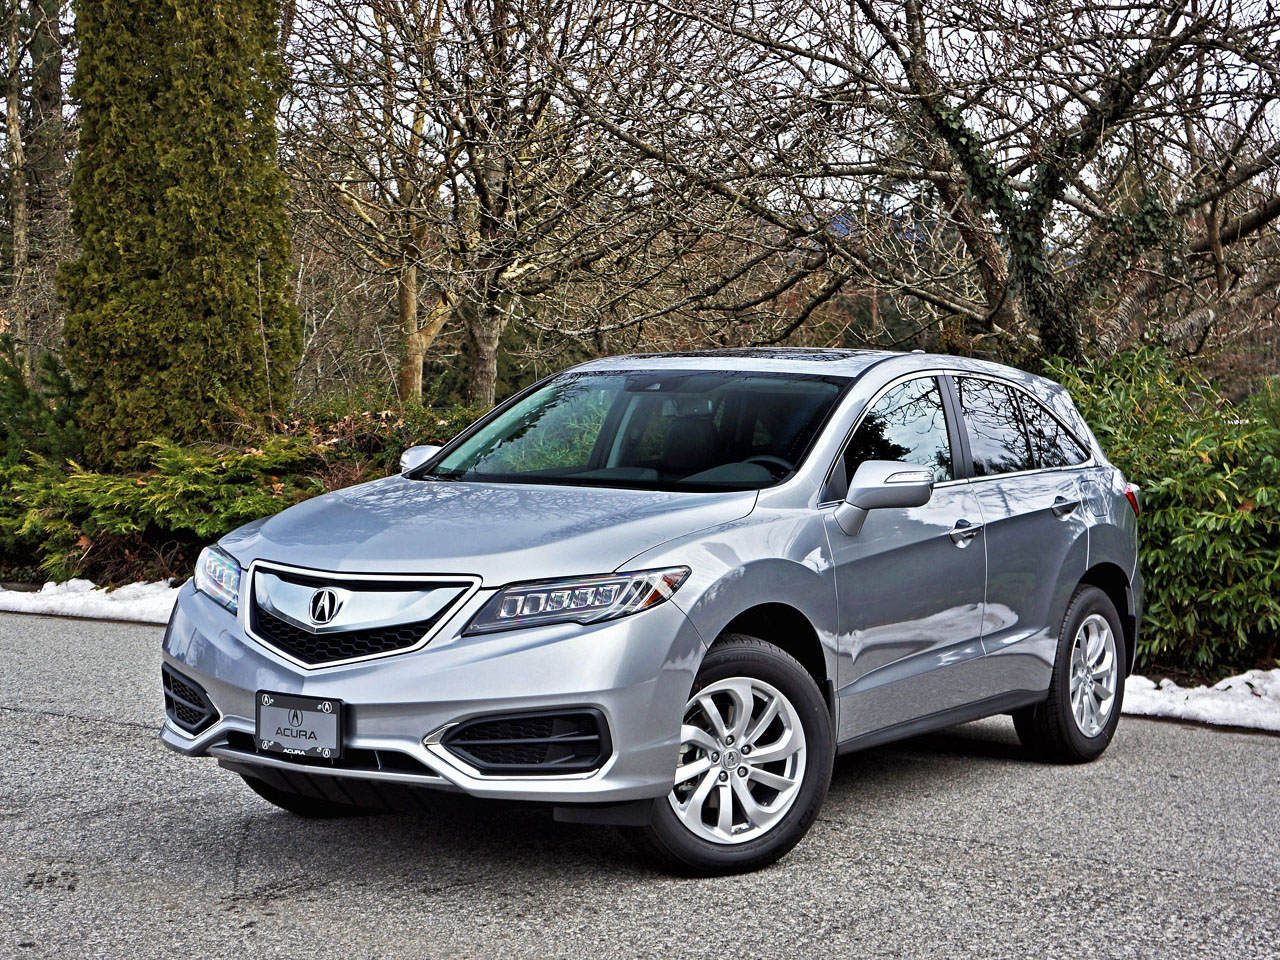 luxury crossover models small acura the rdx suv